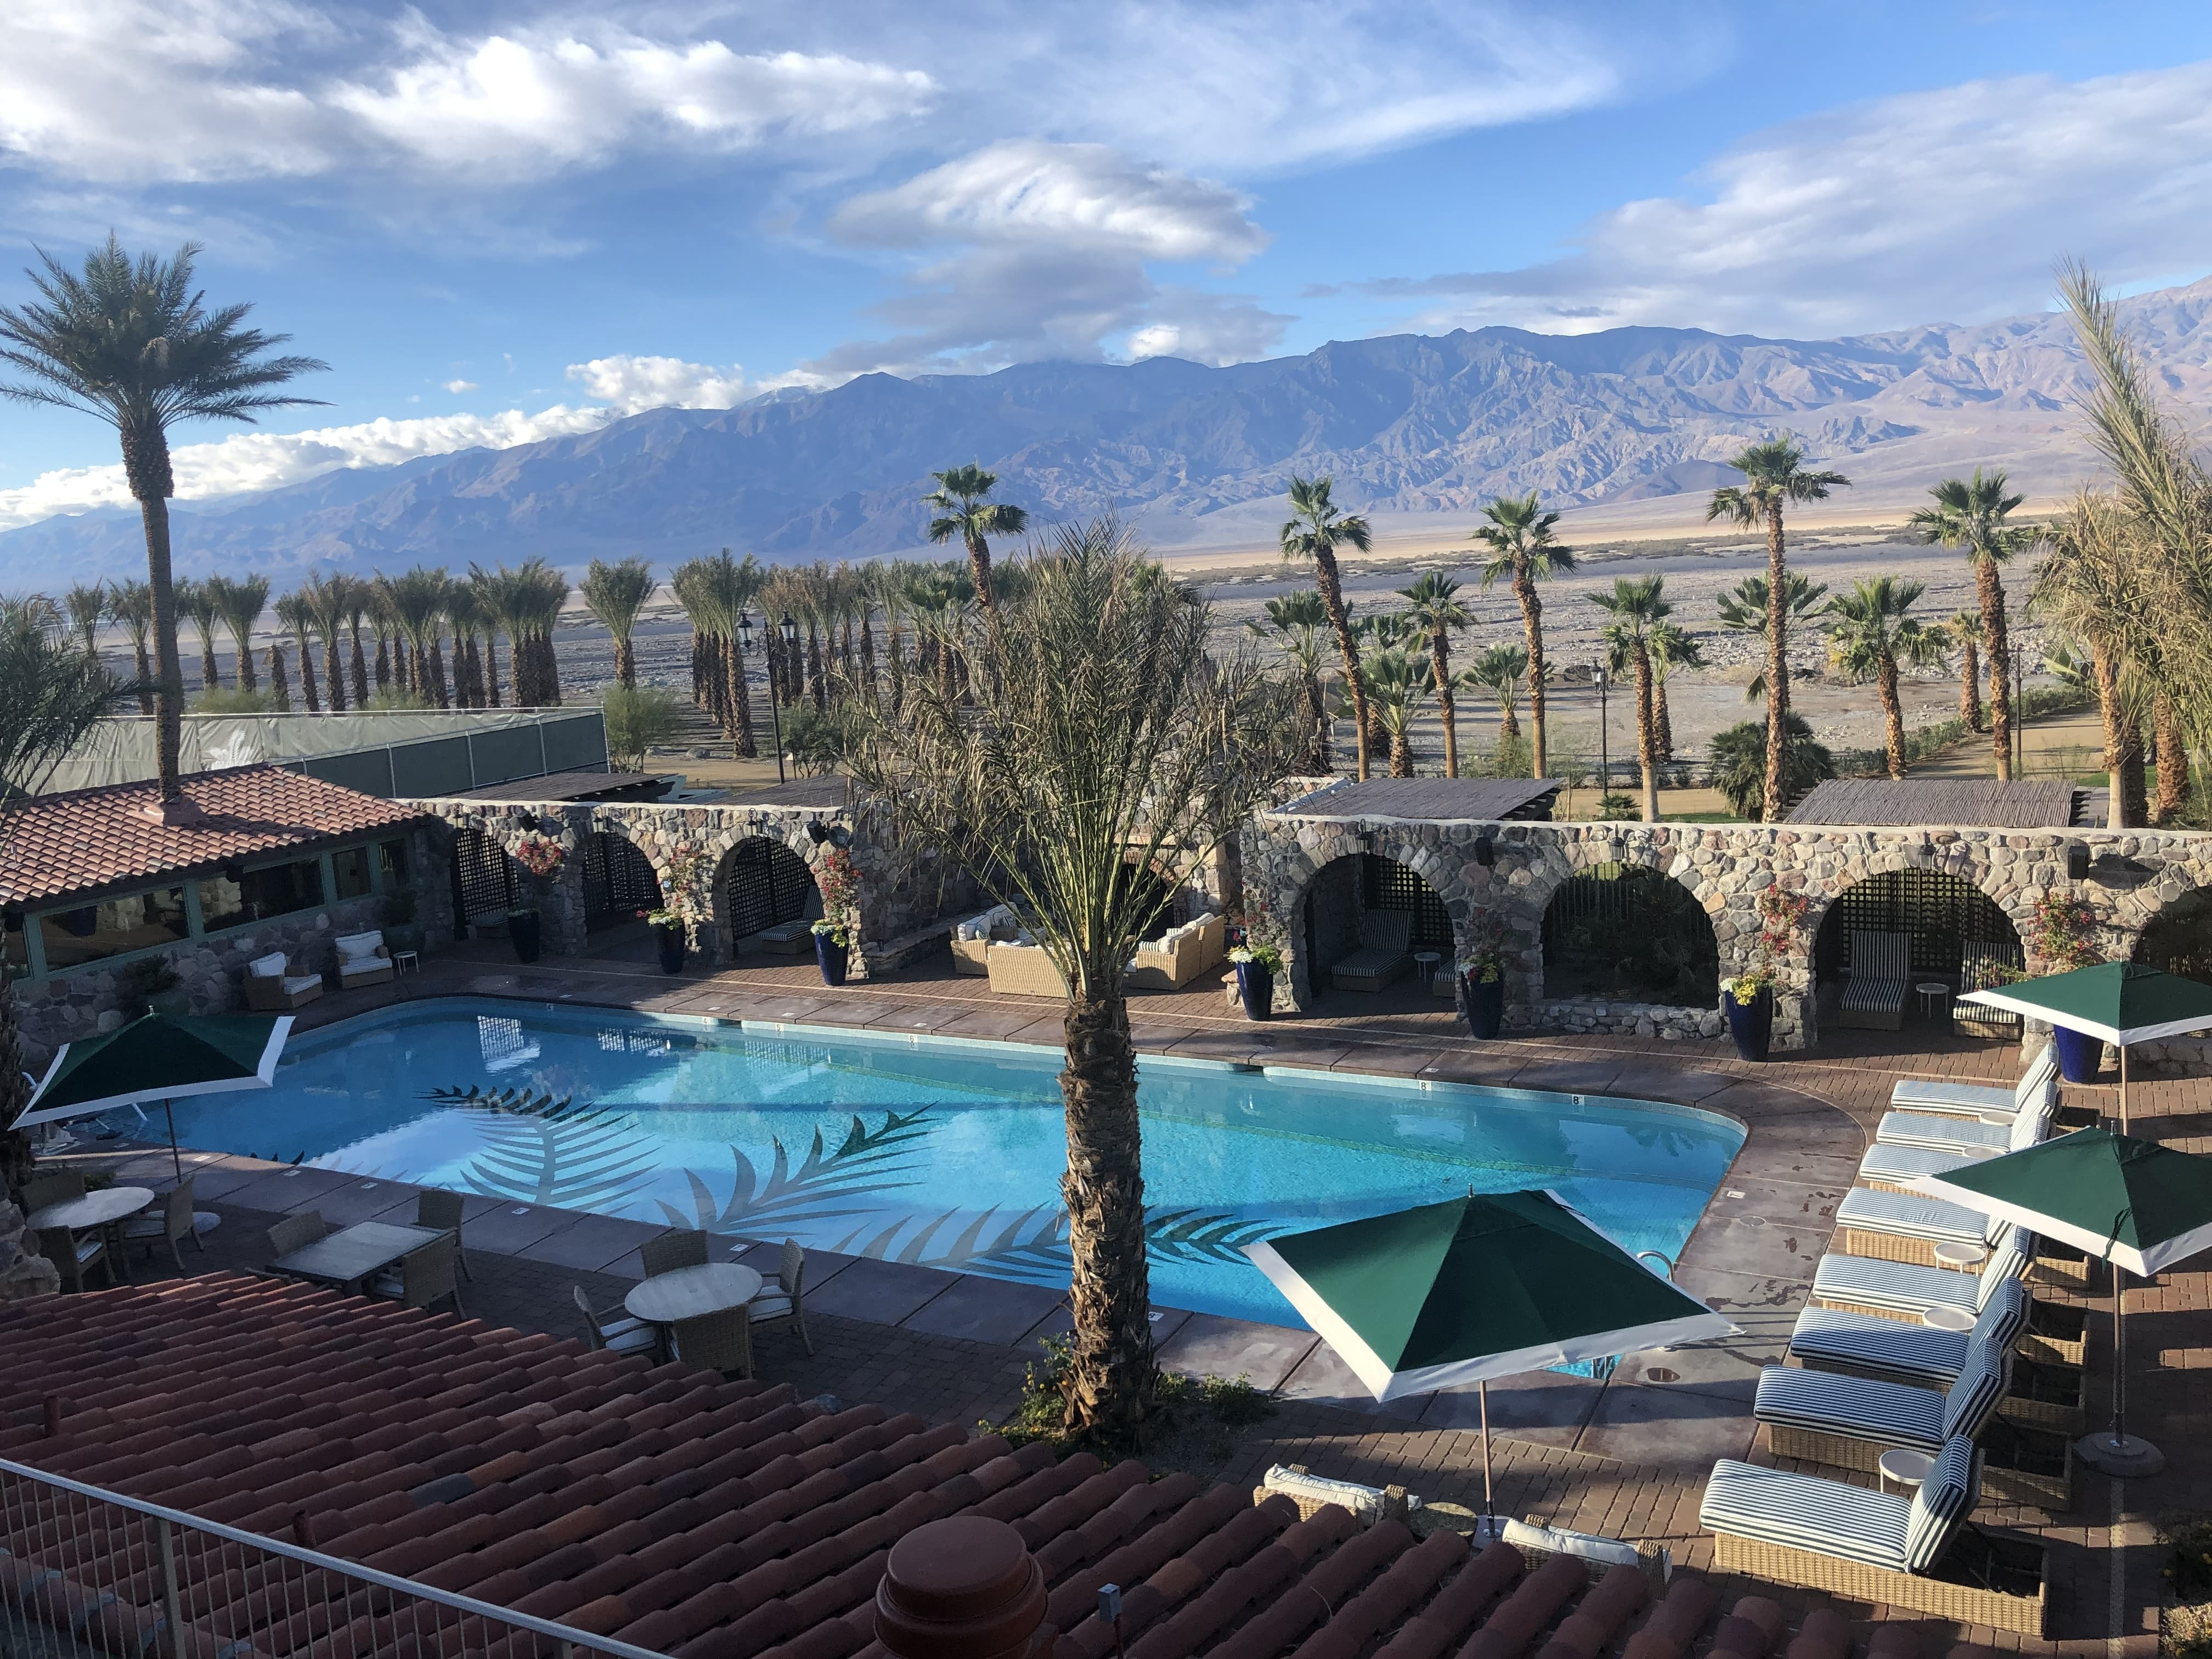 The Inn at Death Valley has a spring-fed swimming pool